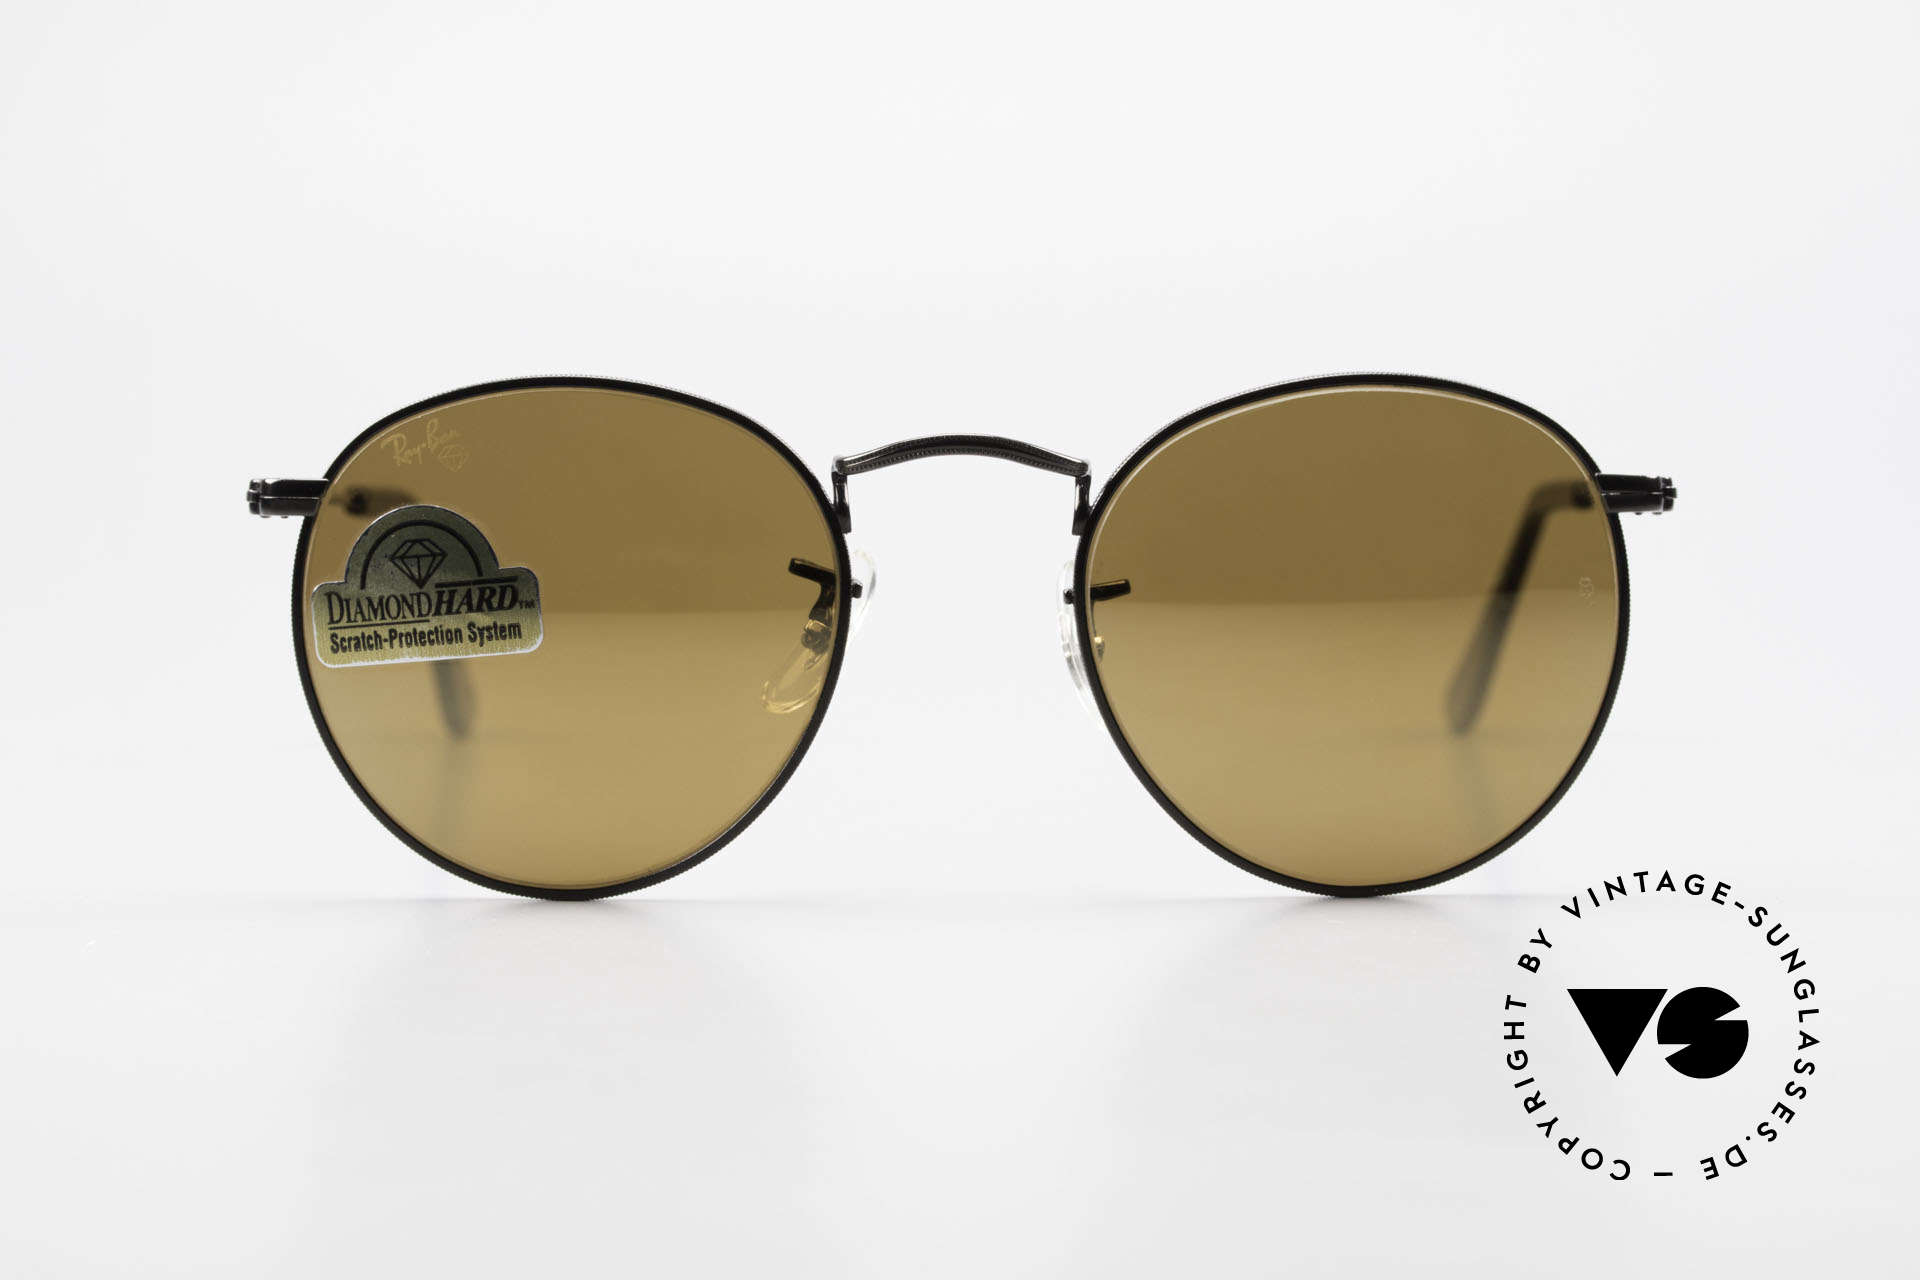 Ray Ban Round Metal 47 Small Round Diamond Hard, a timeless classic in high-end quality; made in USA, Made for Men and Women